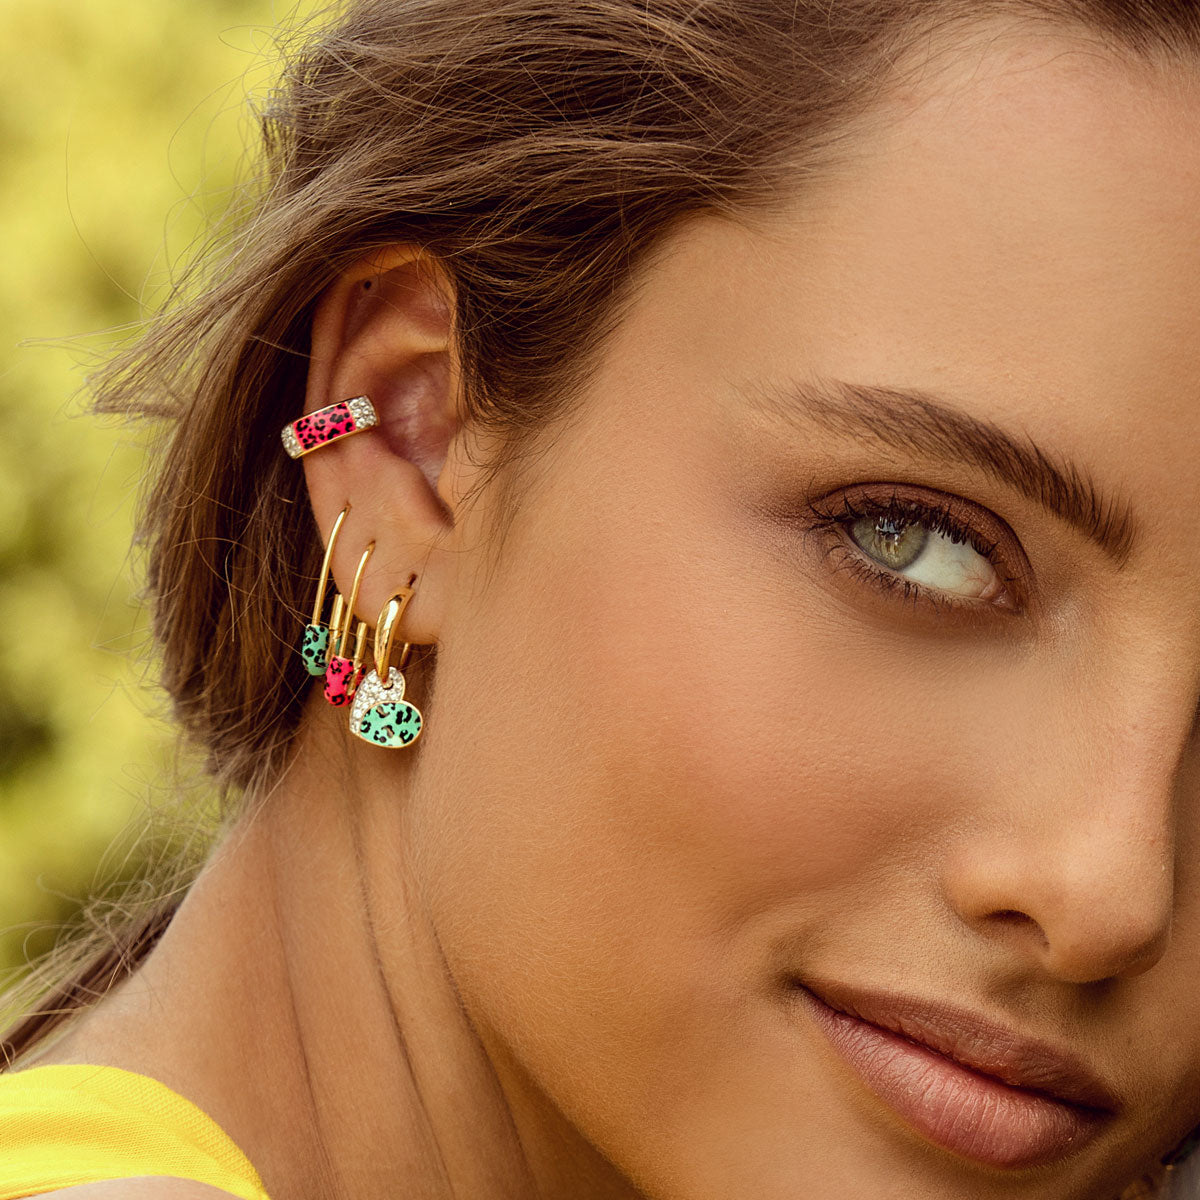 Earrings - Single Earring With Small Hoop and Heart - Leopard Print - 4 | Rue des Mille